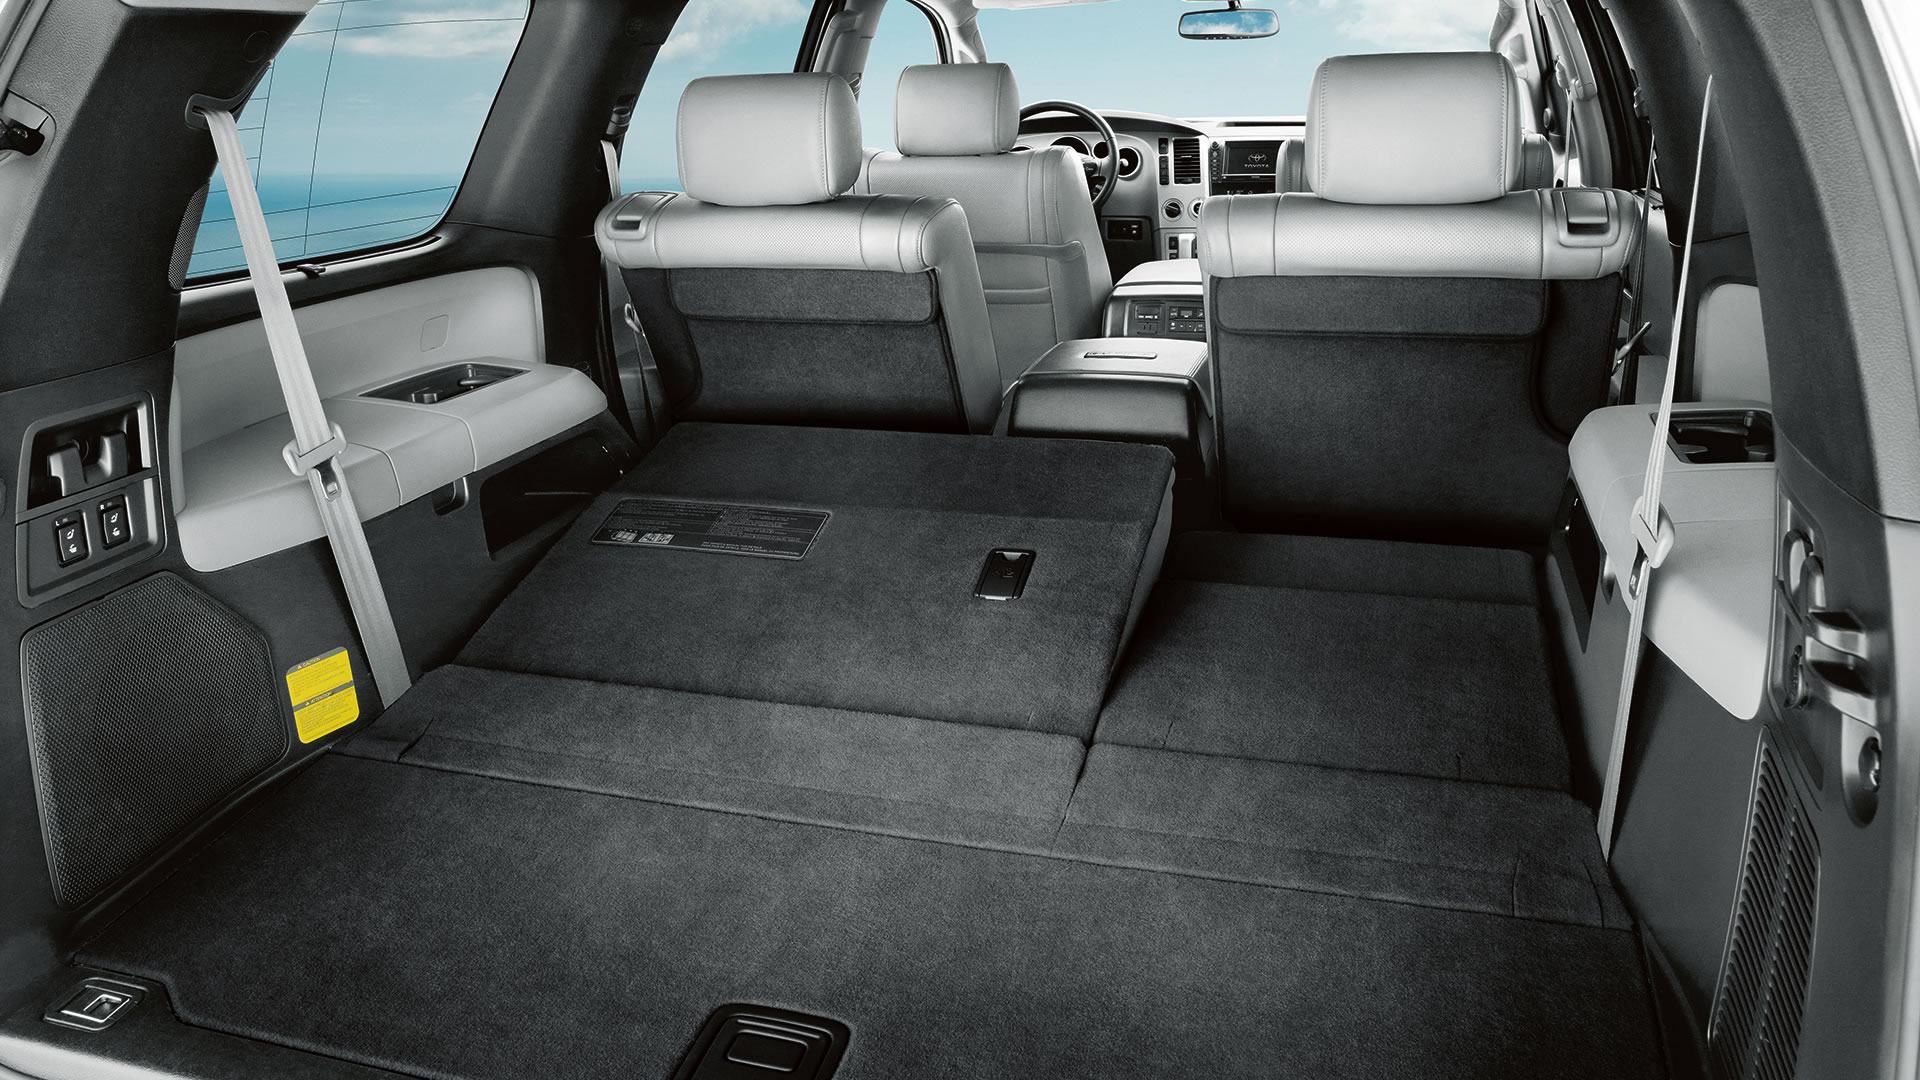 2015-toyota-sequoia-rear-interior